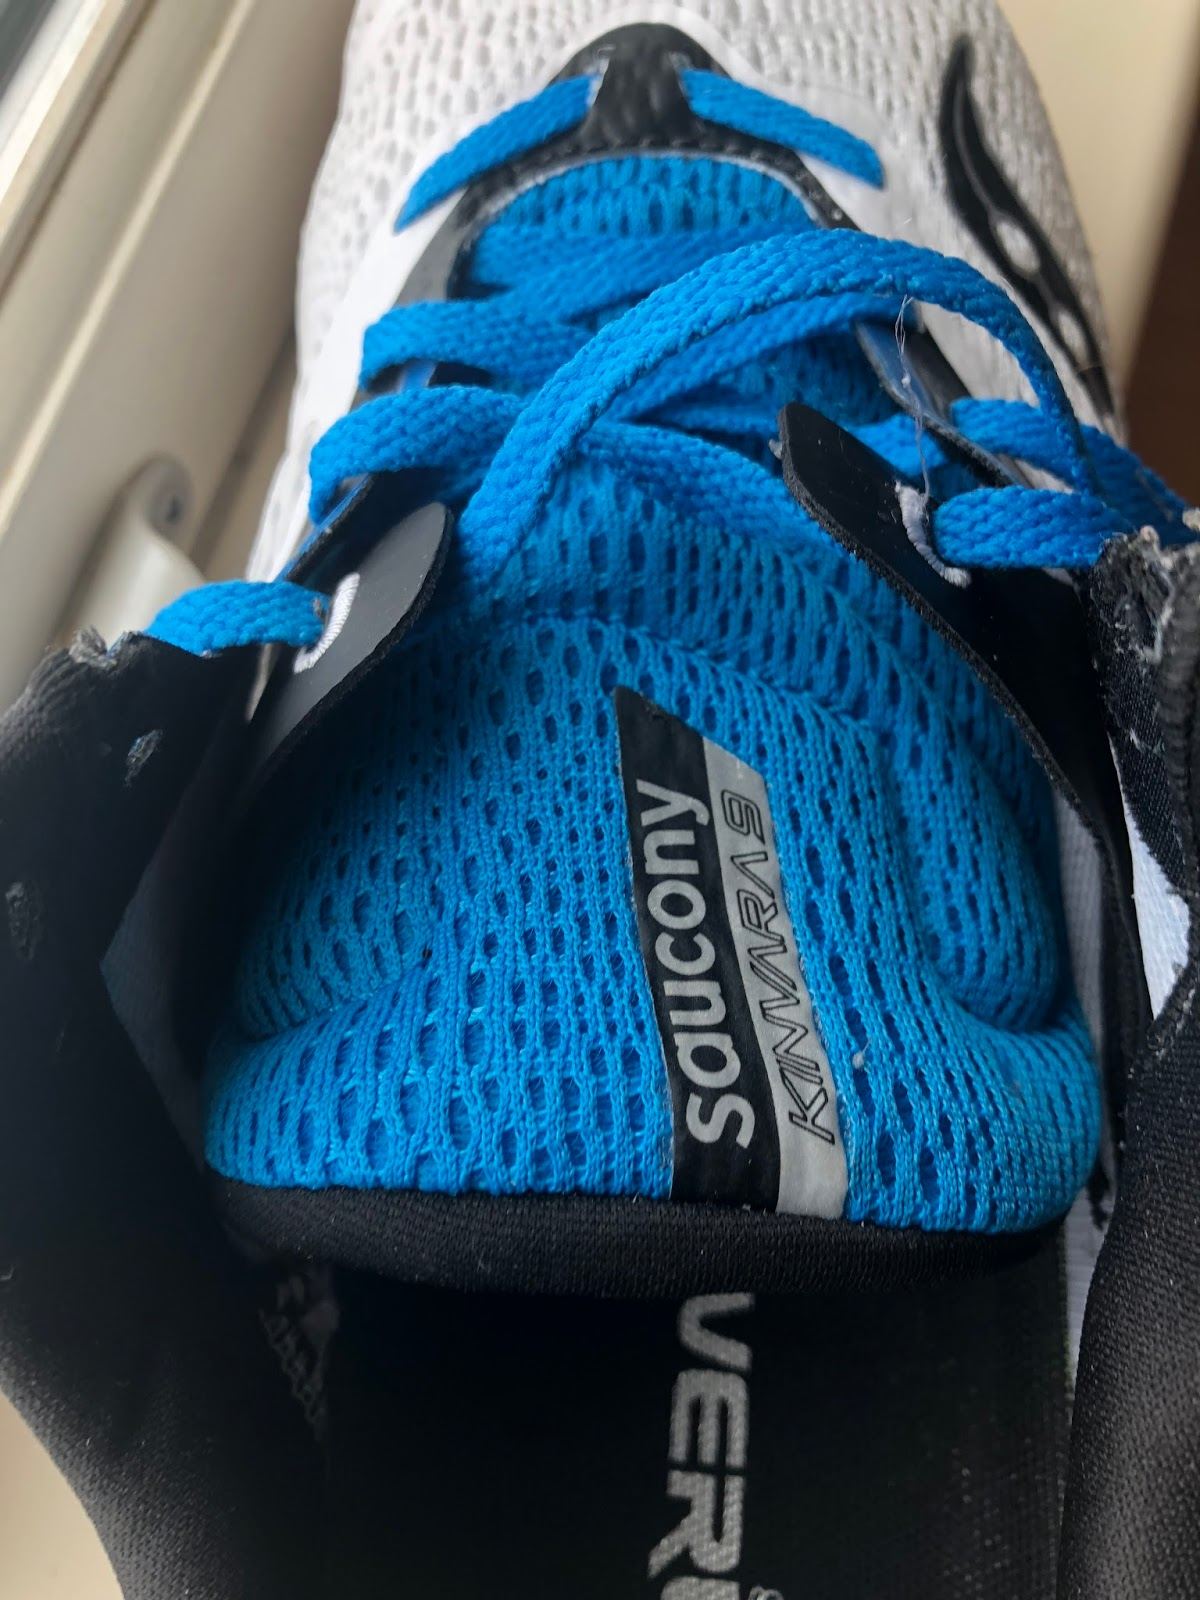 26b843eaa Saucony FINALLY made the Pro-Lock system an integral and useful part of the lacing  system. This is by far the best implementation of the Pro-Lock system.